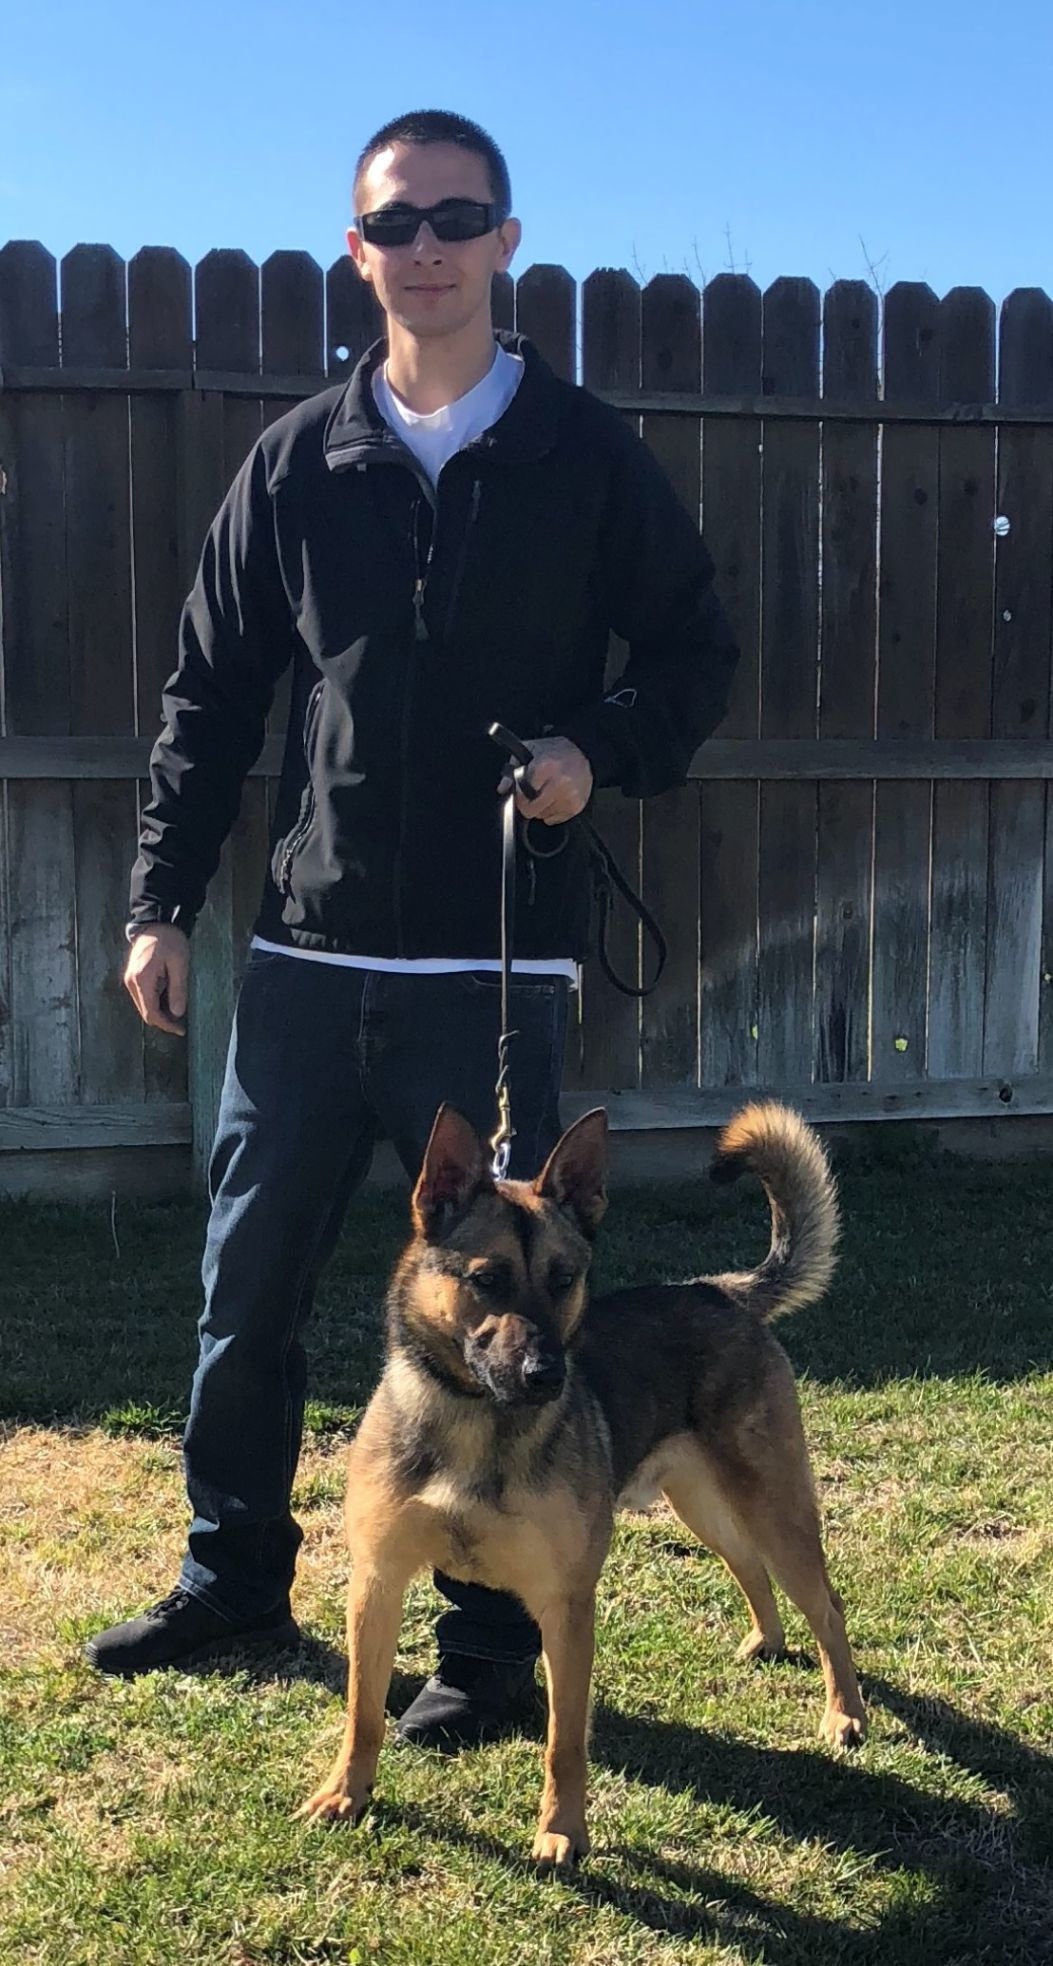 Officer Medeiros and Nico